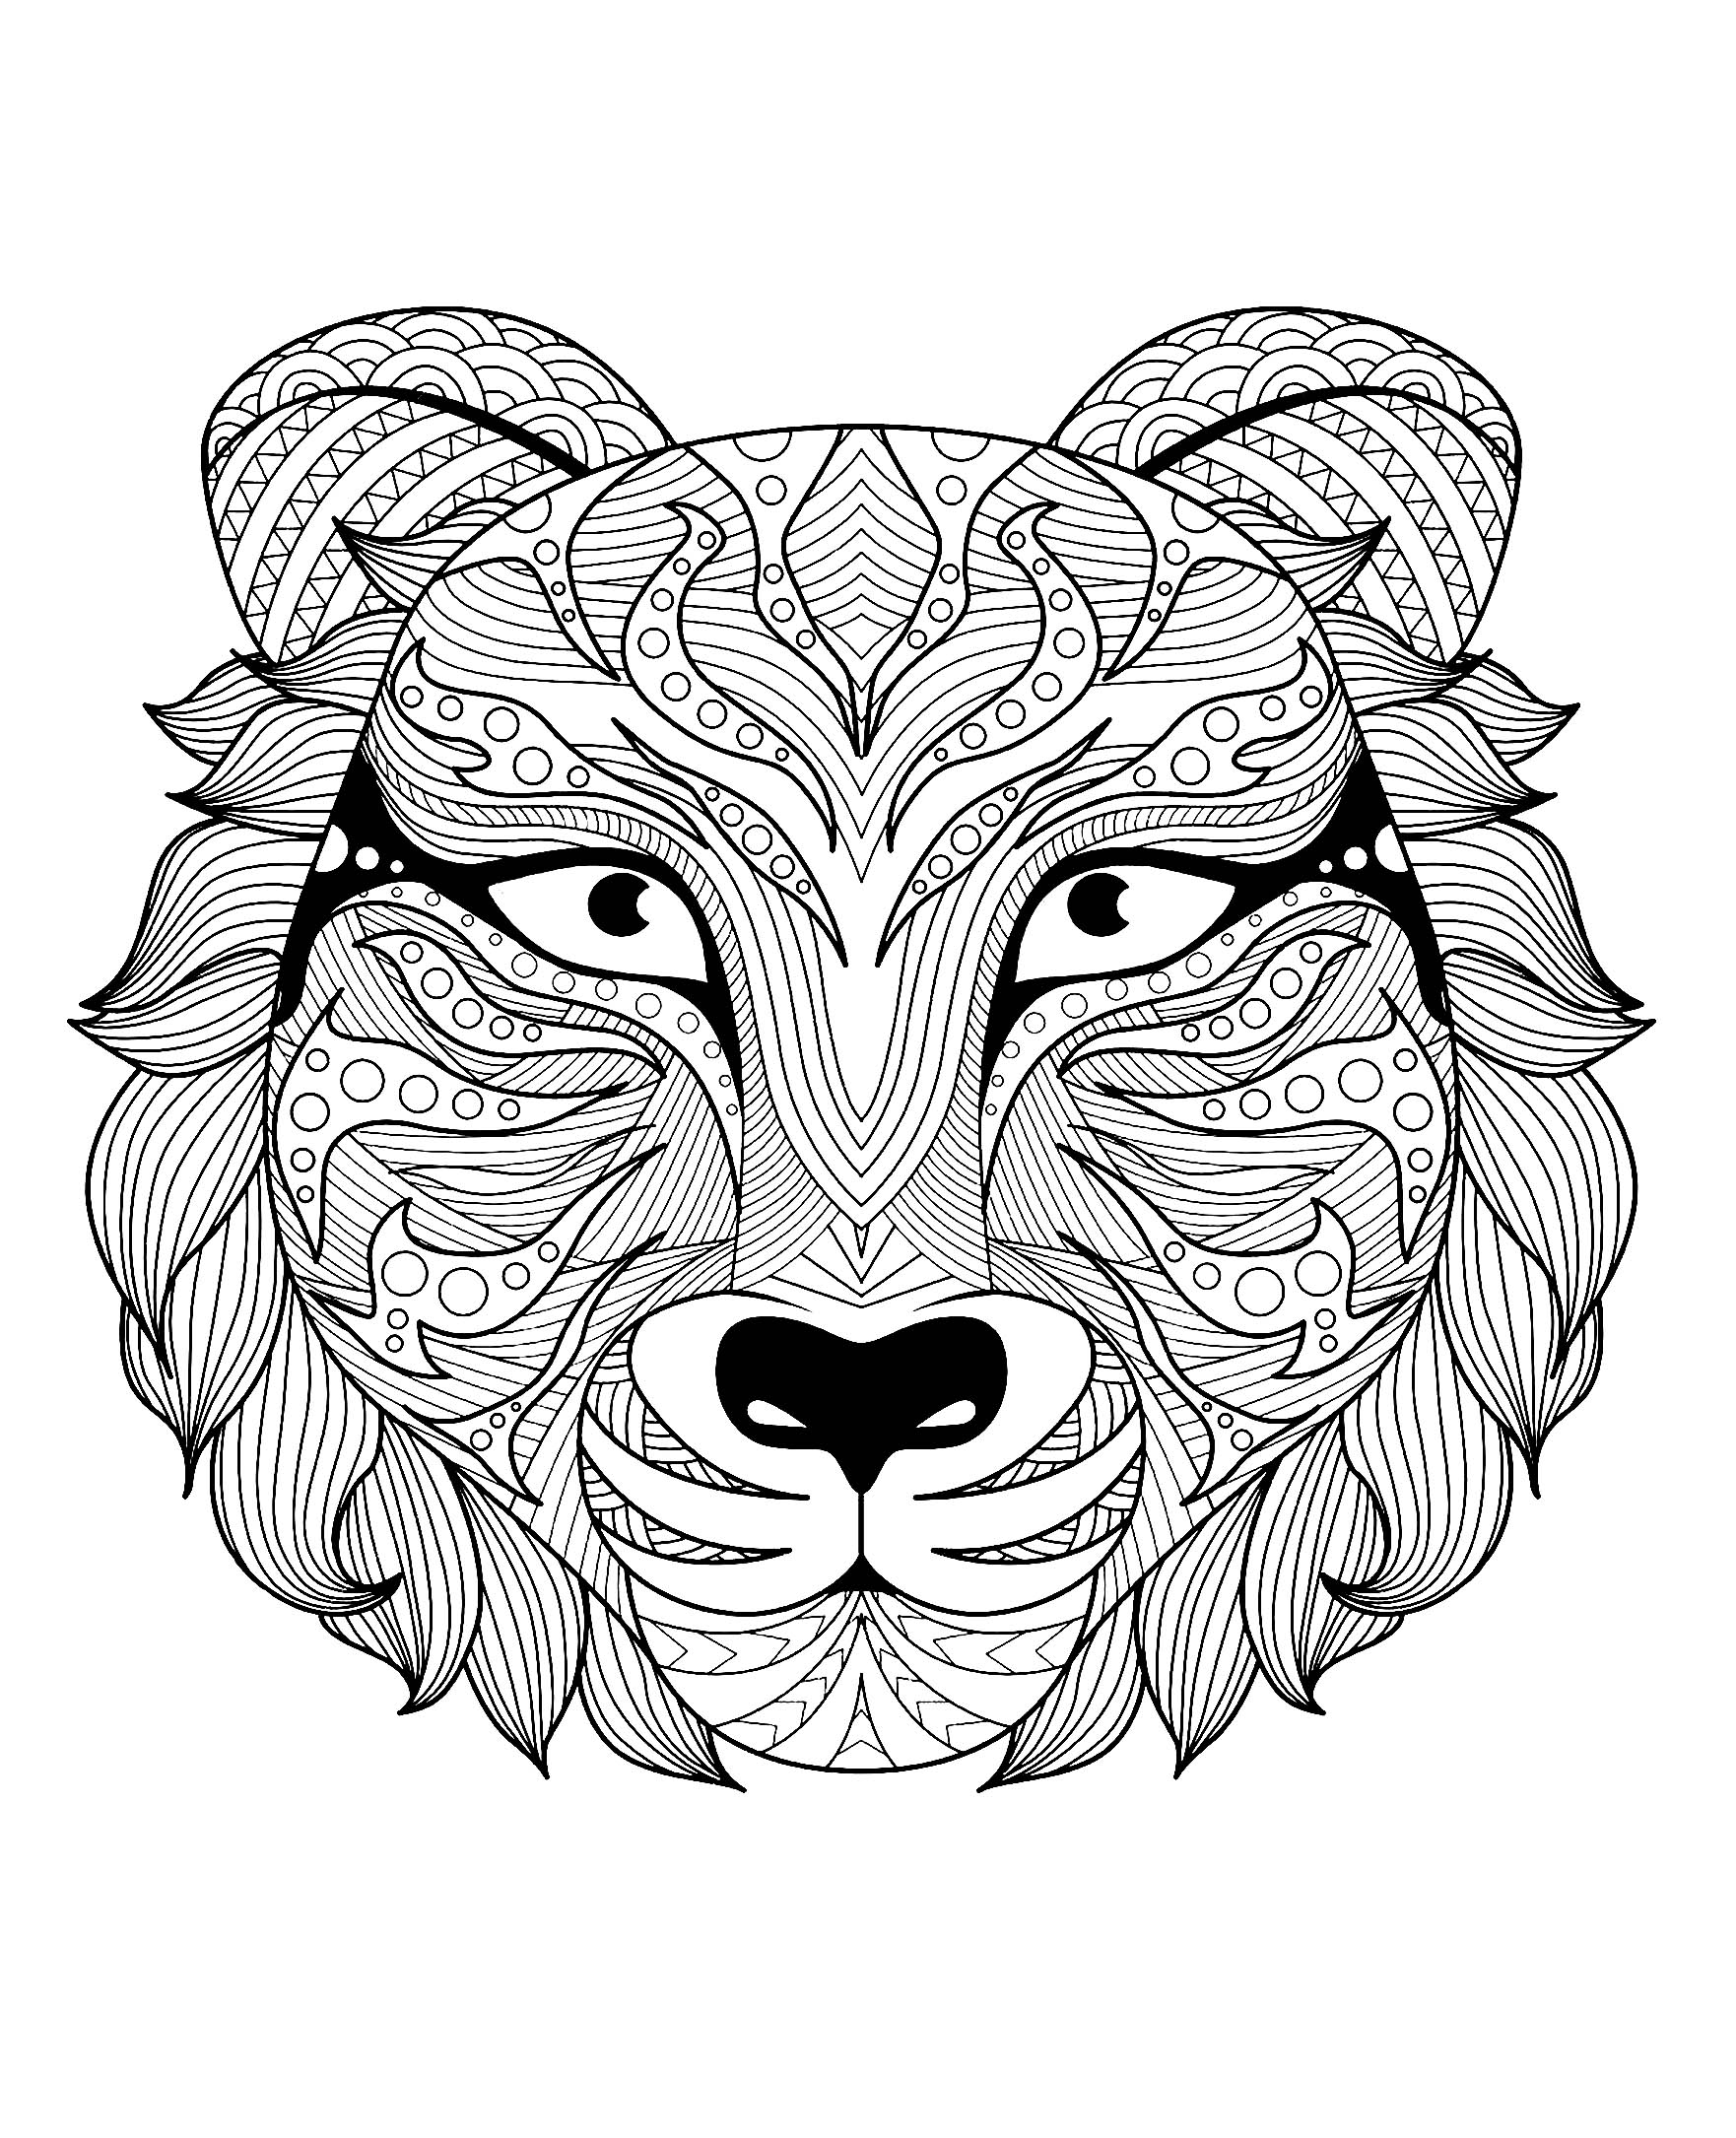 tiger printable coloring pages free printable tiger coloring pages for kids pages printable tiger coloring